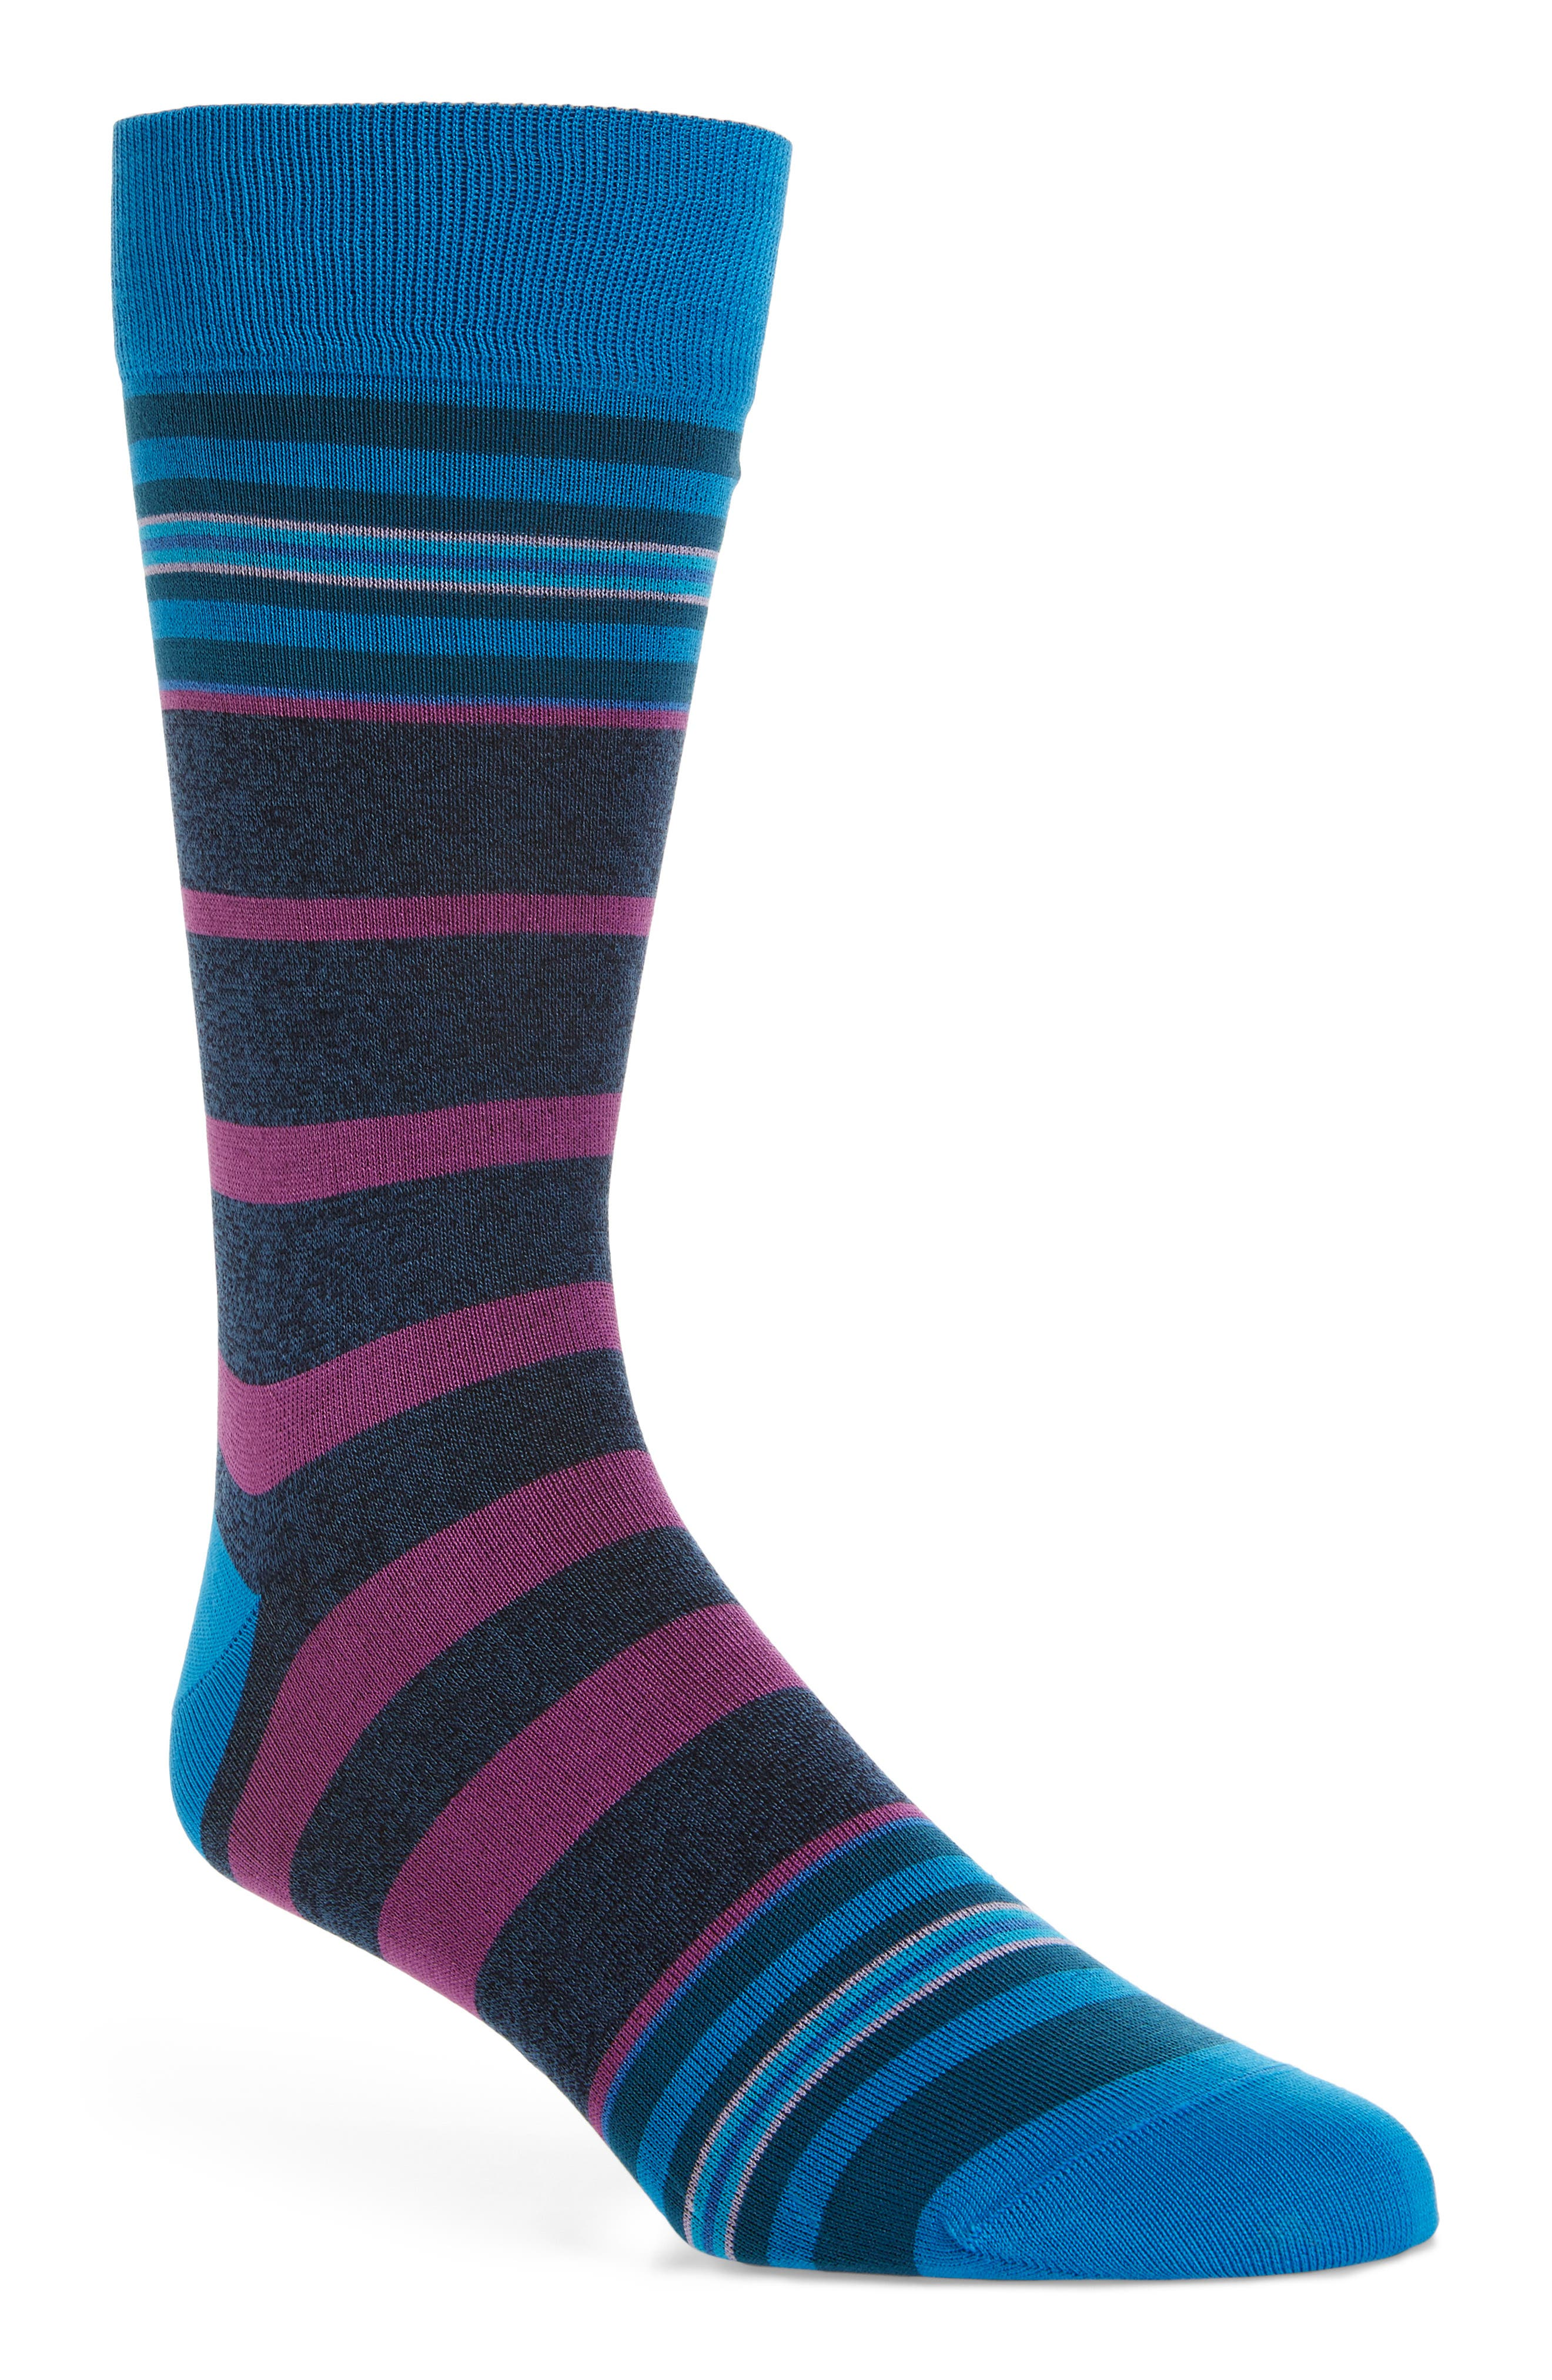 Striped Socks,                             Main thumbnail 1, color,                             427